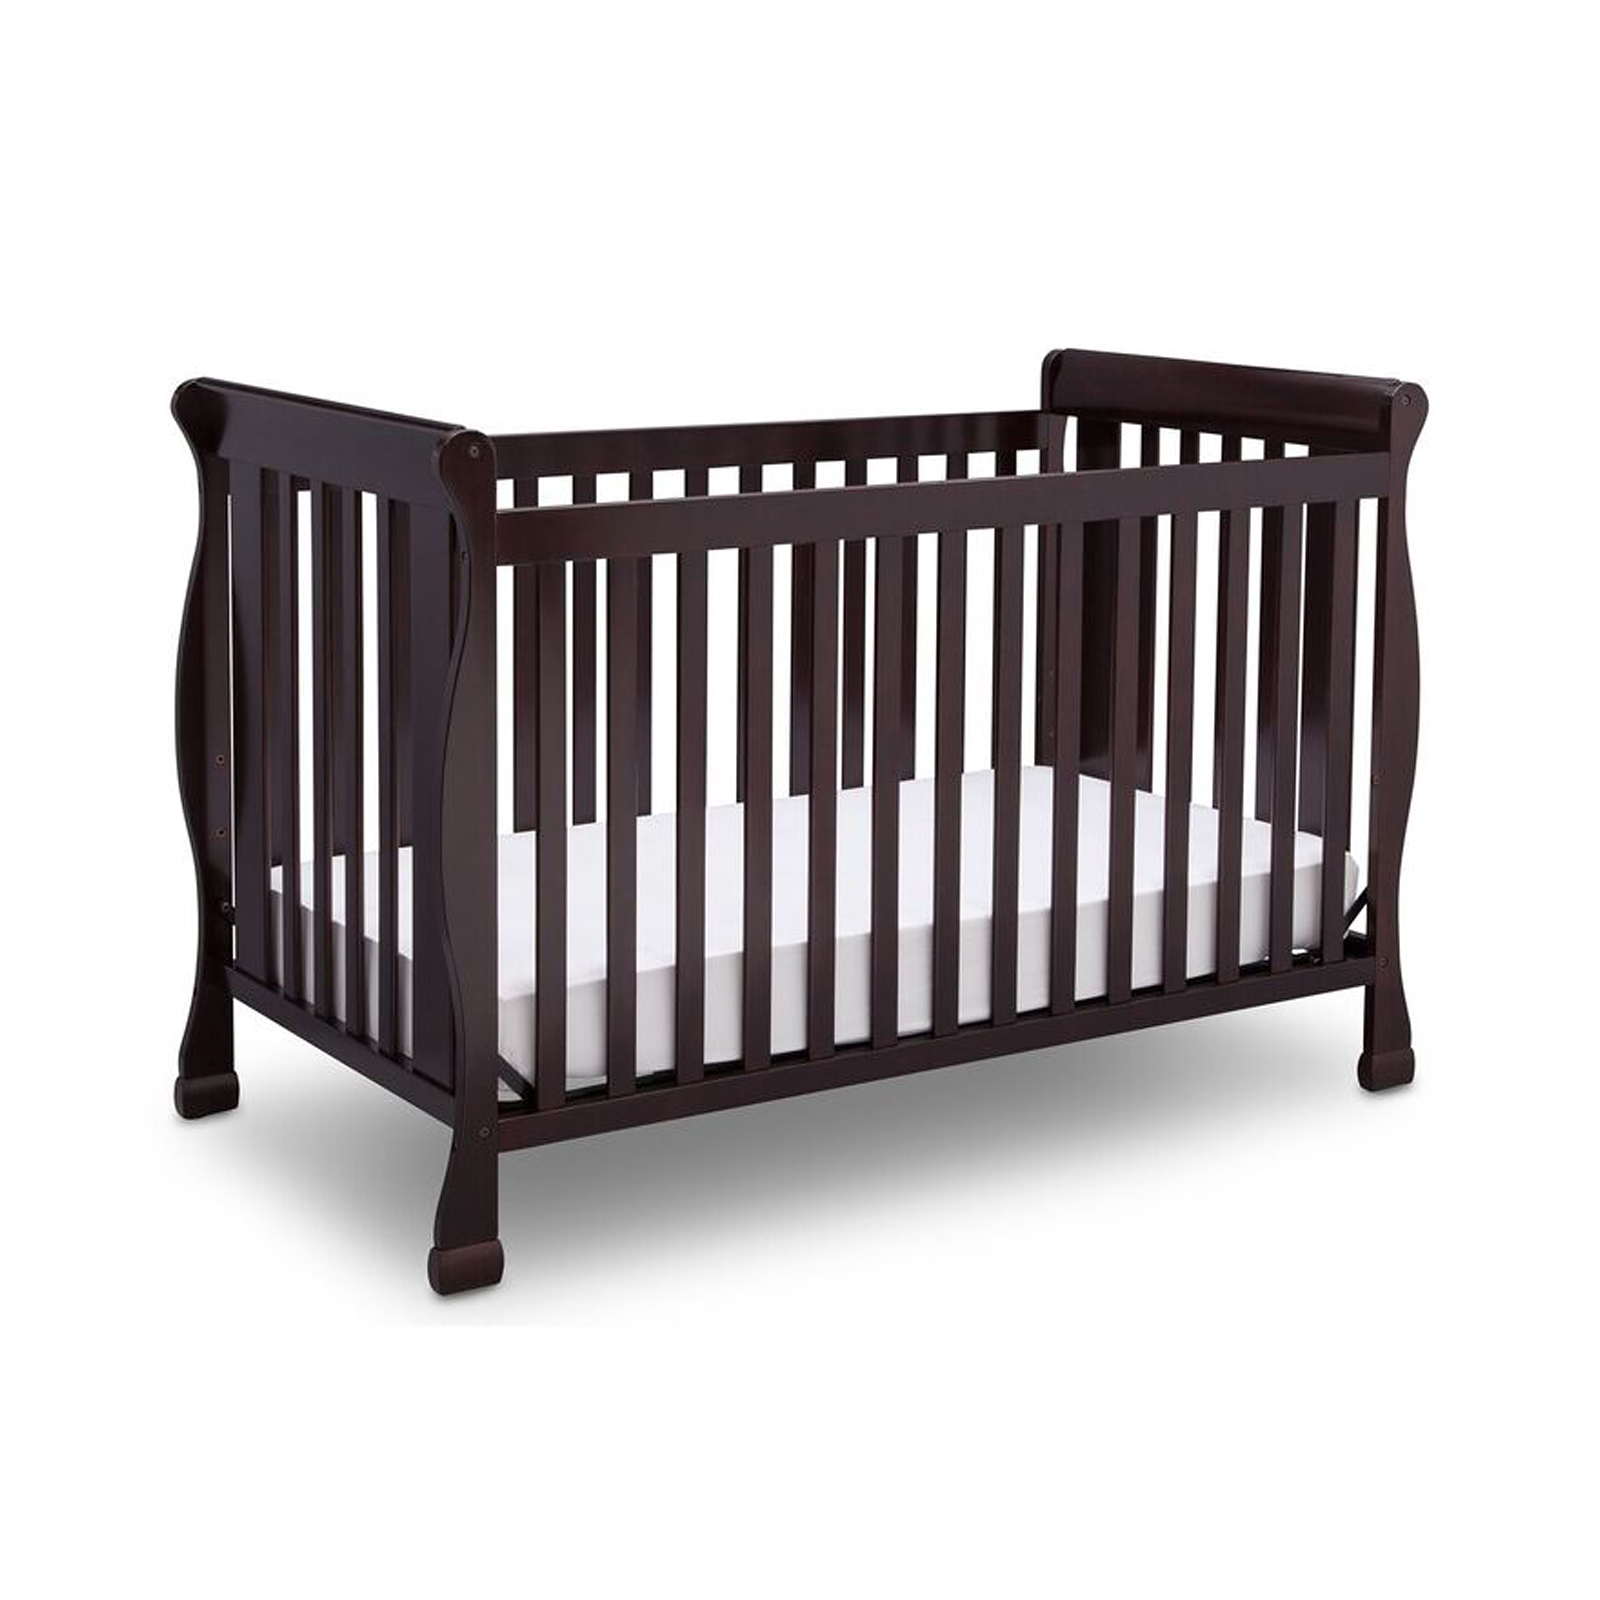 Victorian baby crib for sale - Victorian Baby Crib For Sale 10